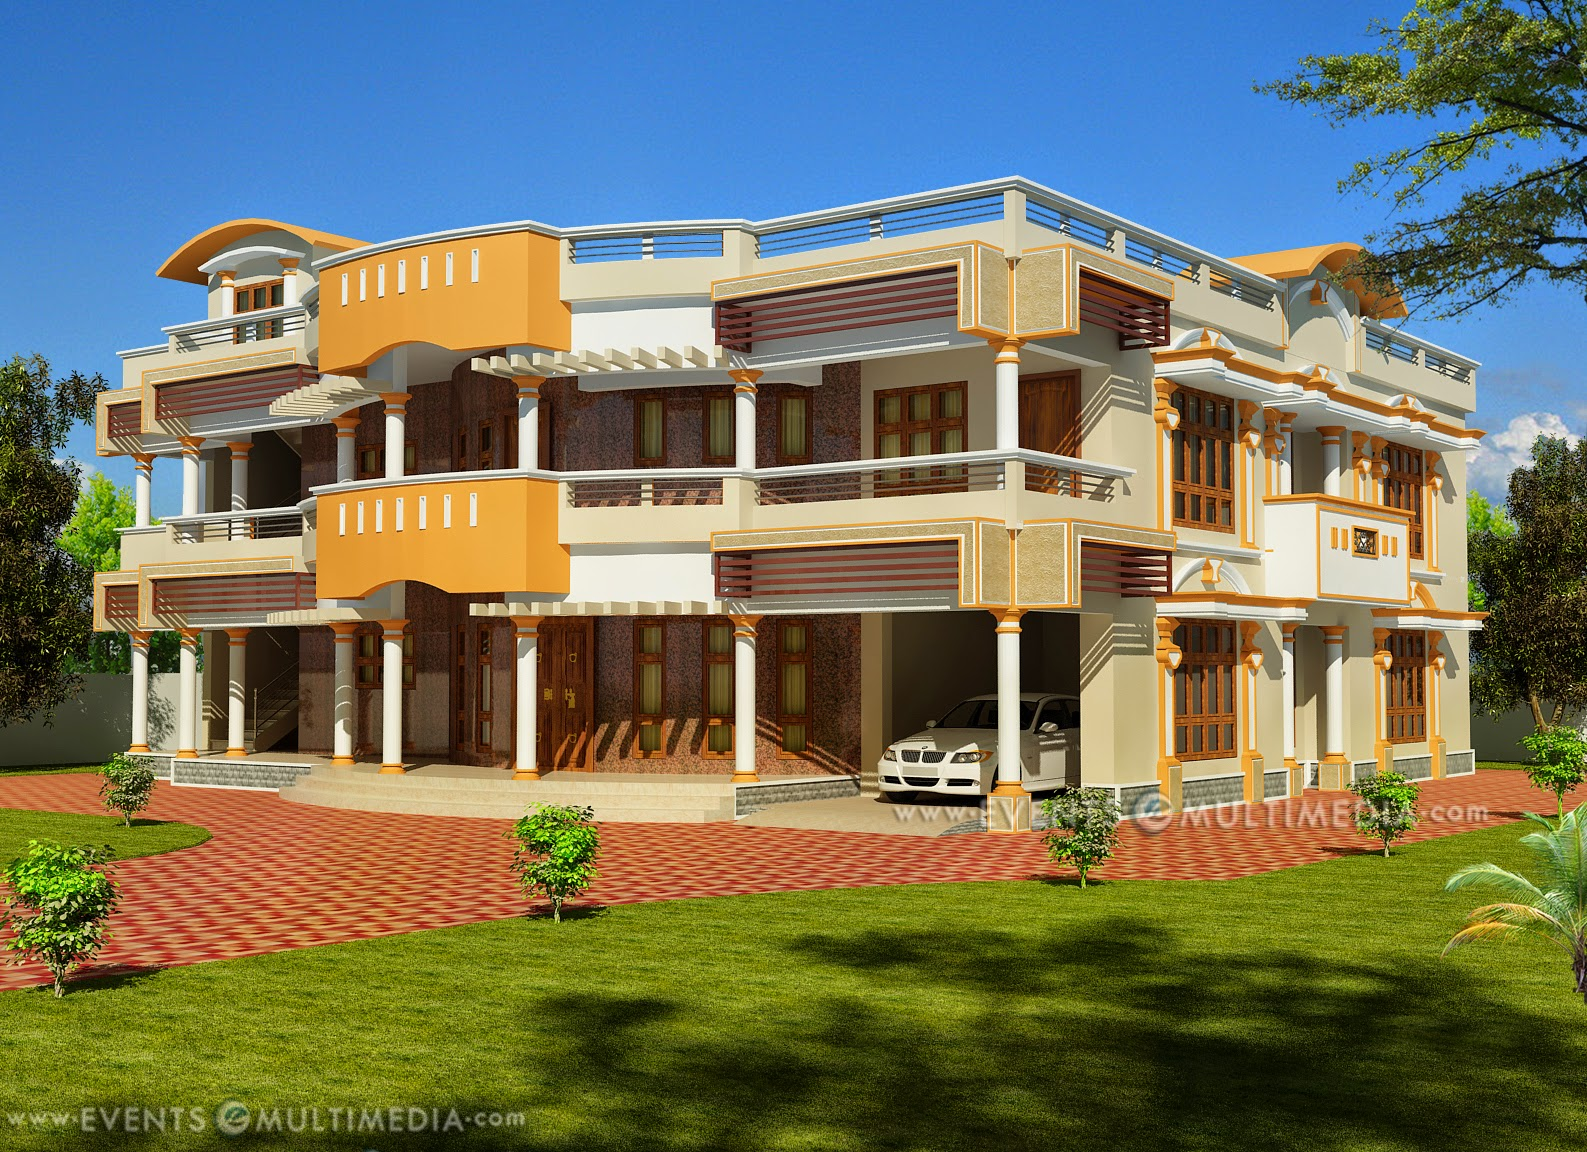 Evens construction pvt ltd june 2014 for 5000 square feet in square meters